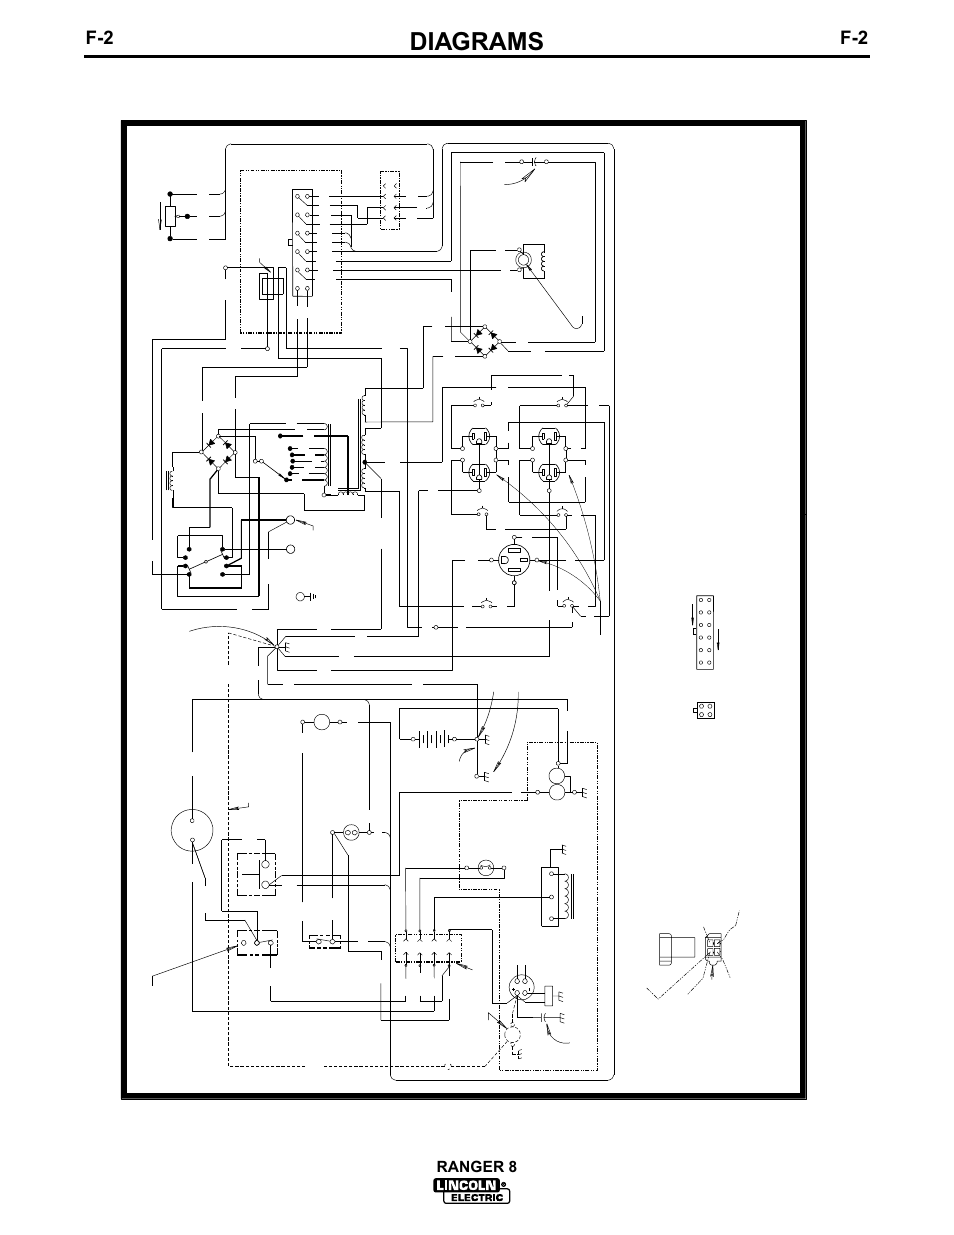 Lincoln Ranger Wiring Diagram Schematics 1997 Town Car Diagrams 8 Electrical Symbols Per E1537 Electric 2003 Ls Radio